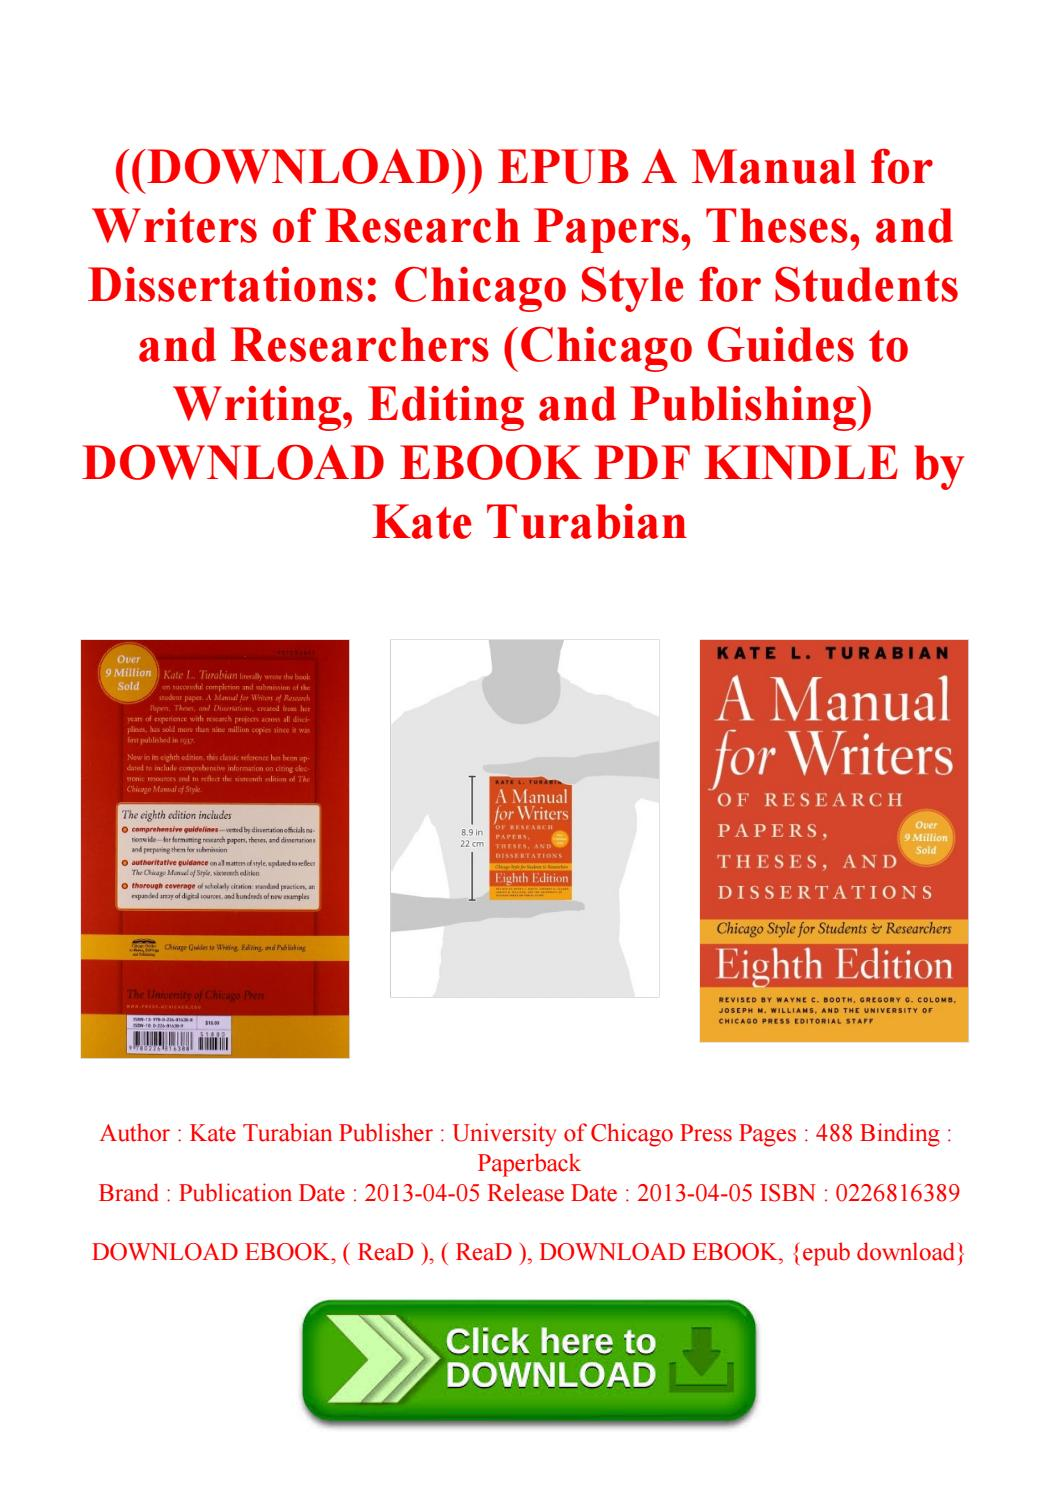 003 Page 1 Manual For Writers Of Researchs Theses And Dissertations Magnificent Research Papers A 8th Ed Pdf Full